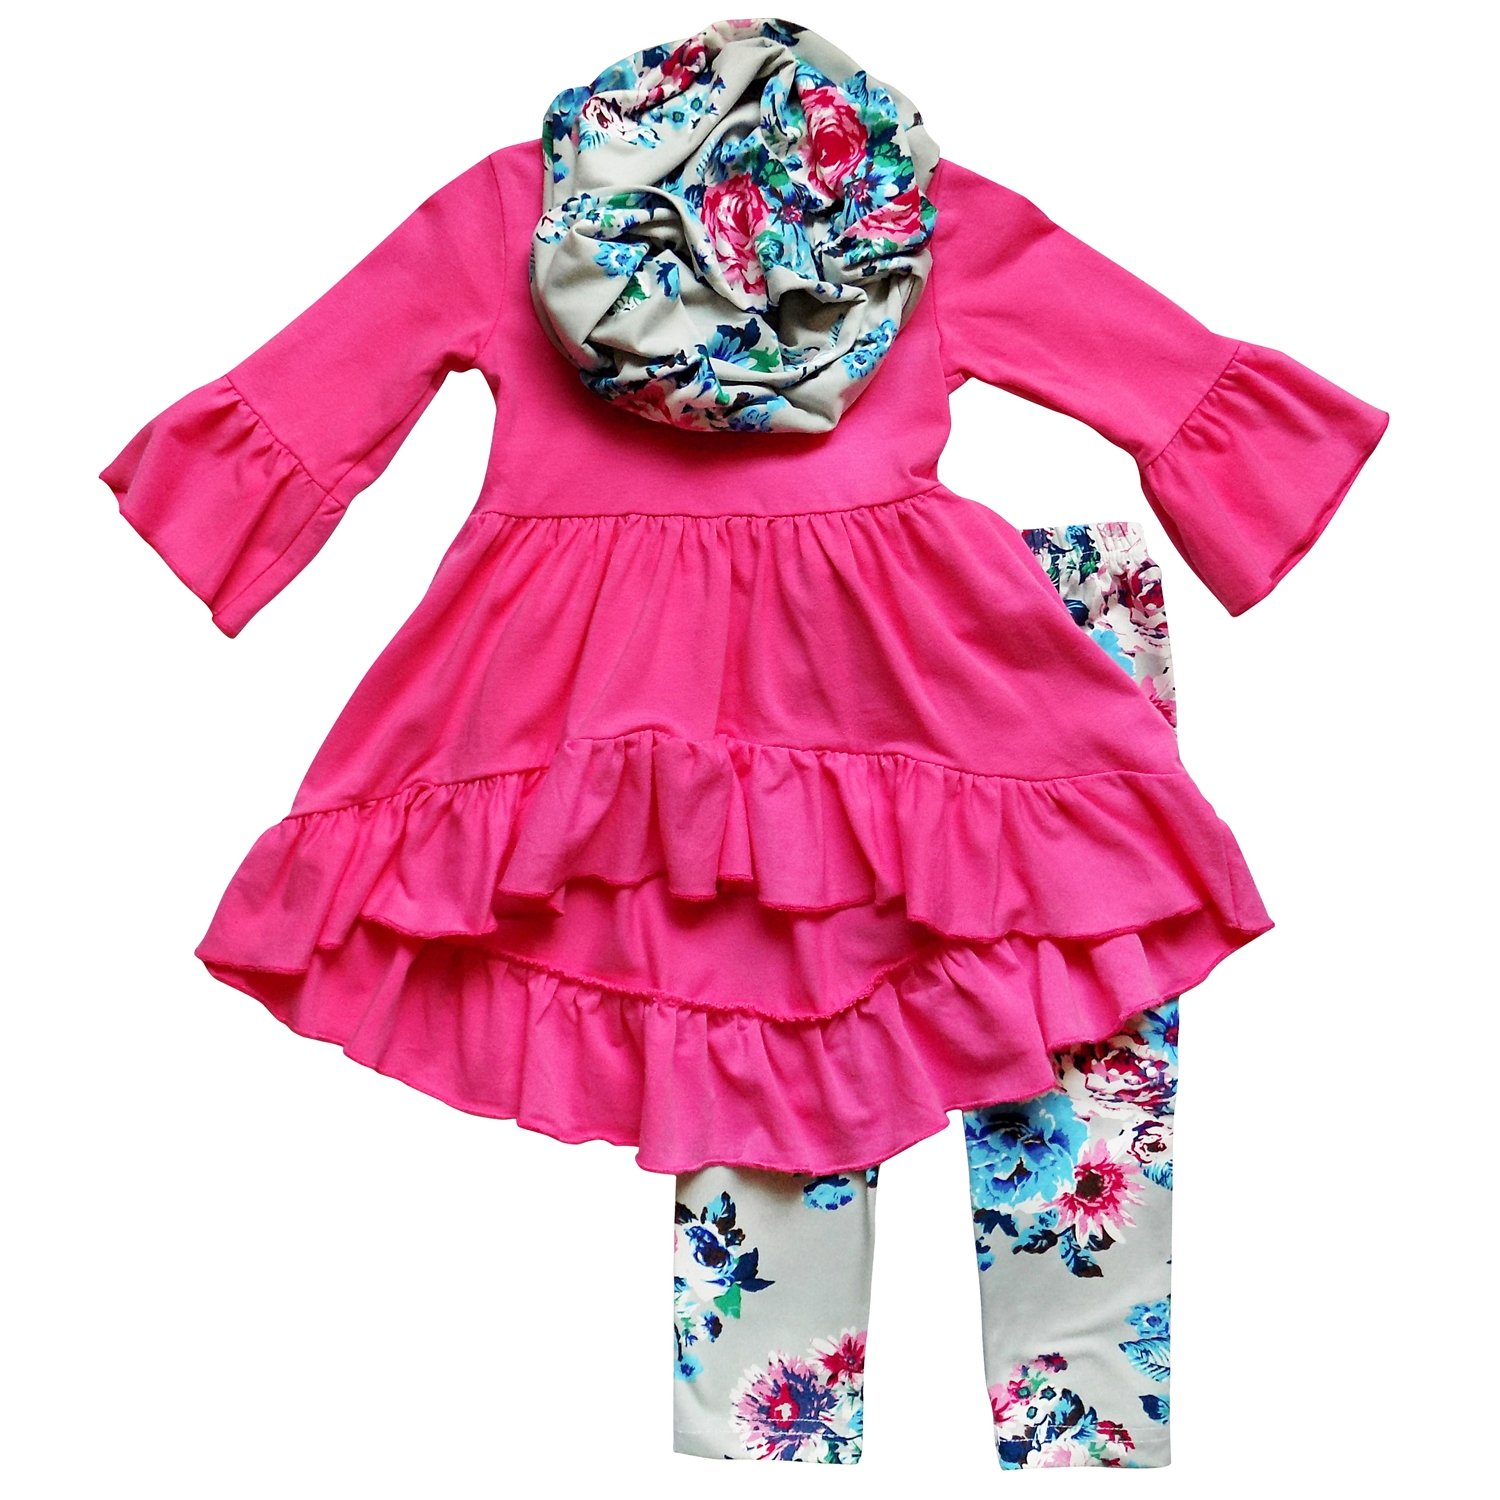 So Sydney Toddler Girls 3 Pc Hi Lo Ruffle Flare Tunic Top Outfit, Infinity Scarf (XXXL (8), Hot Pink Gray Vintage Floral)